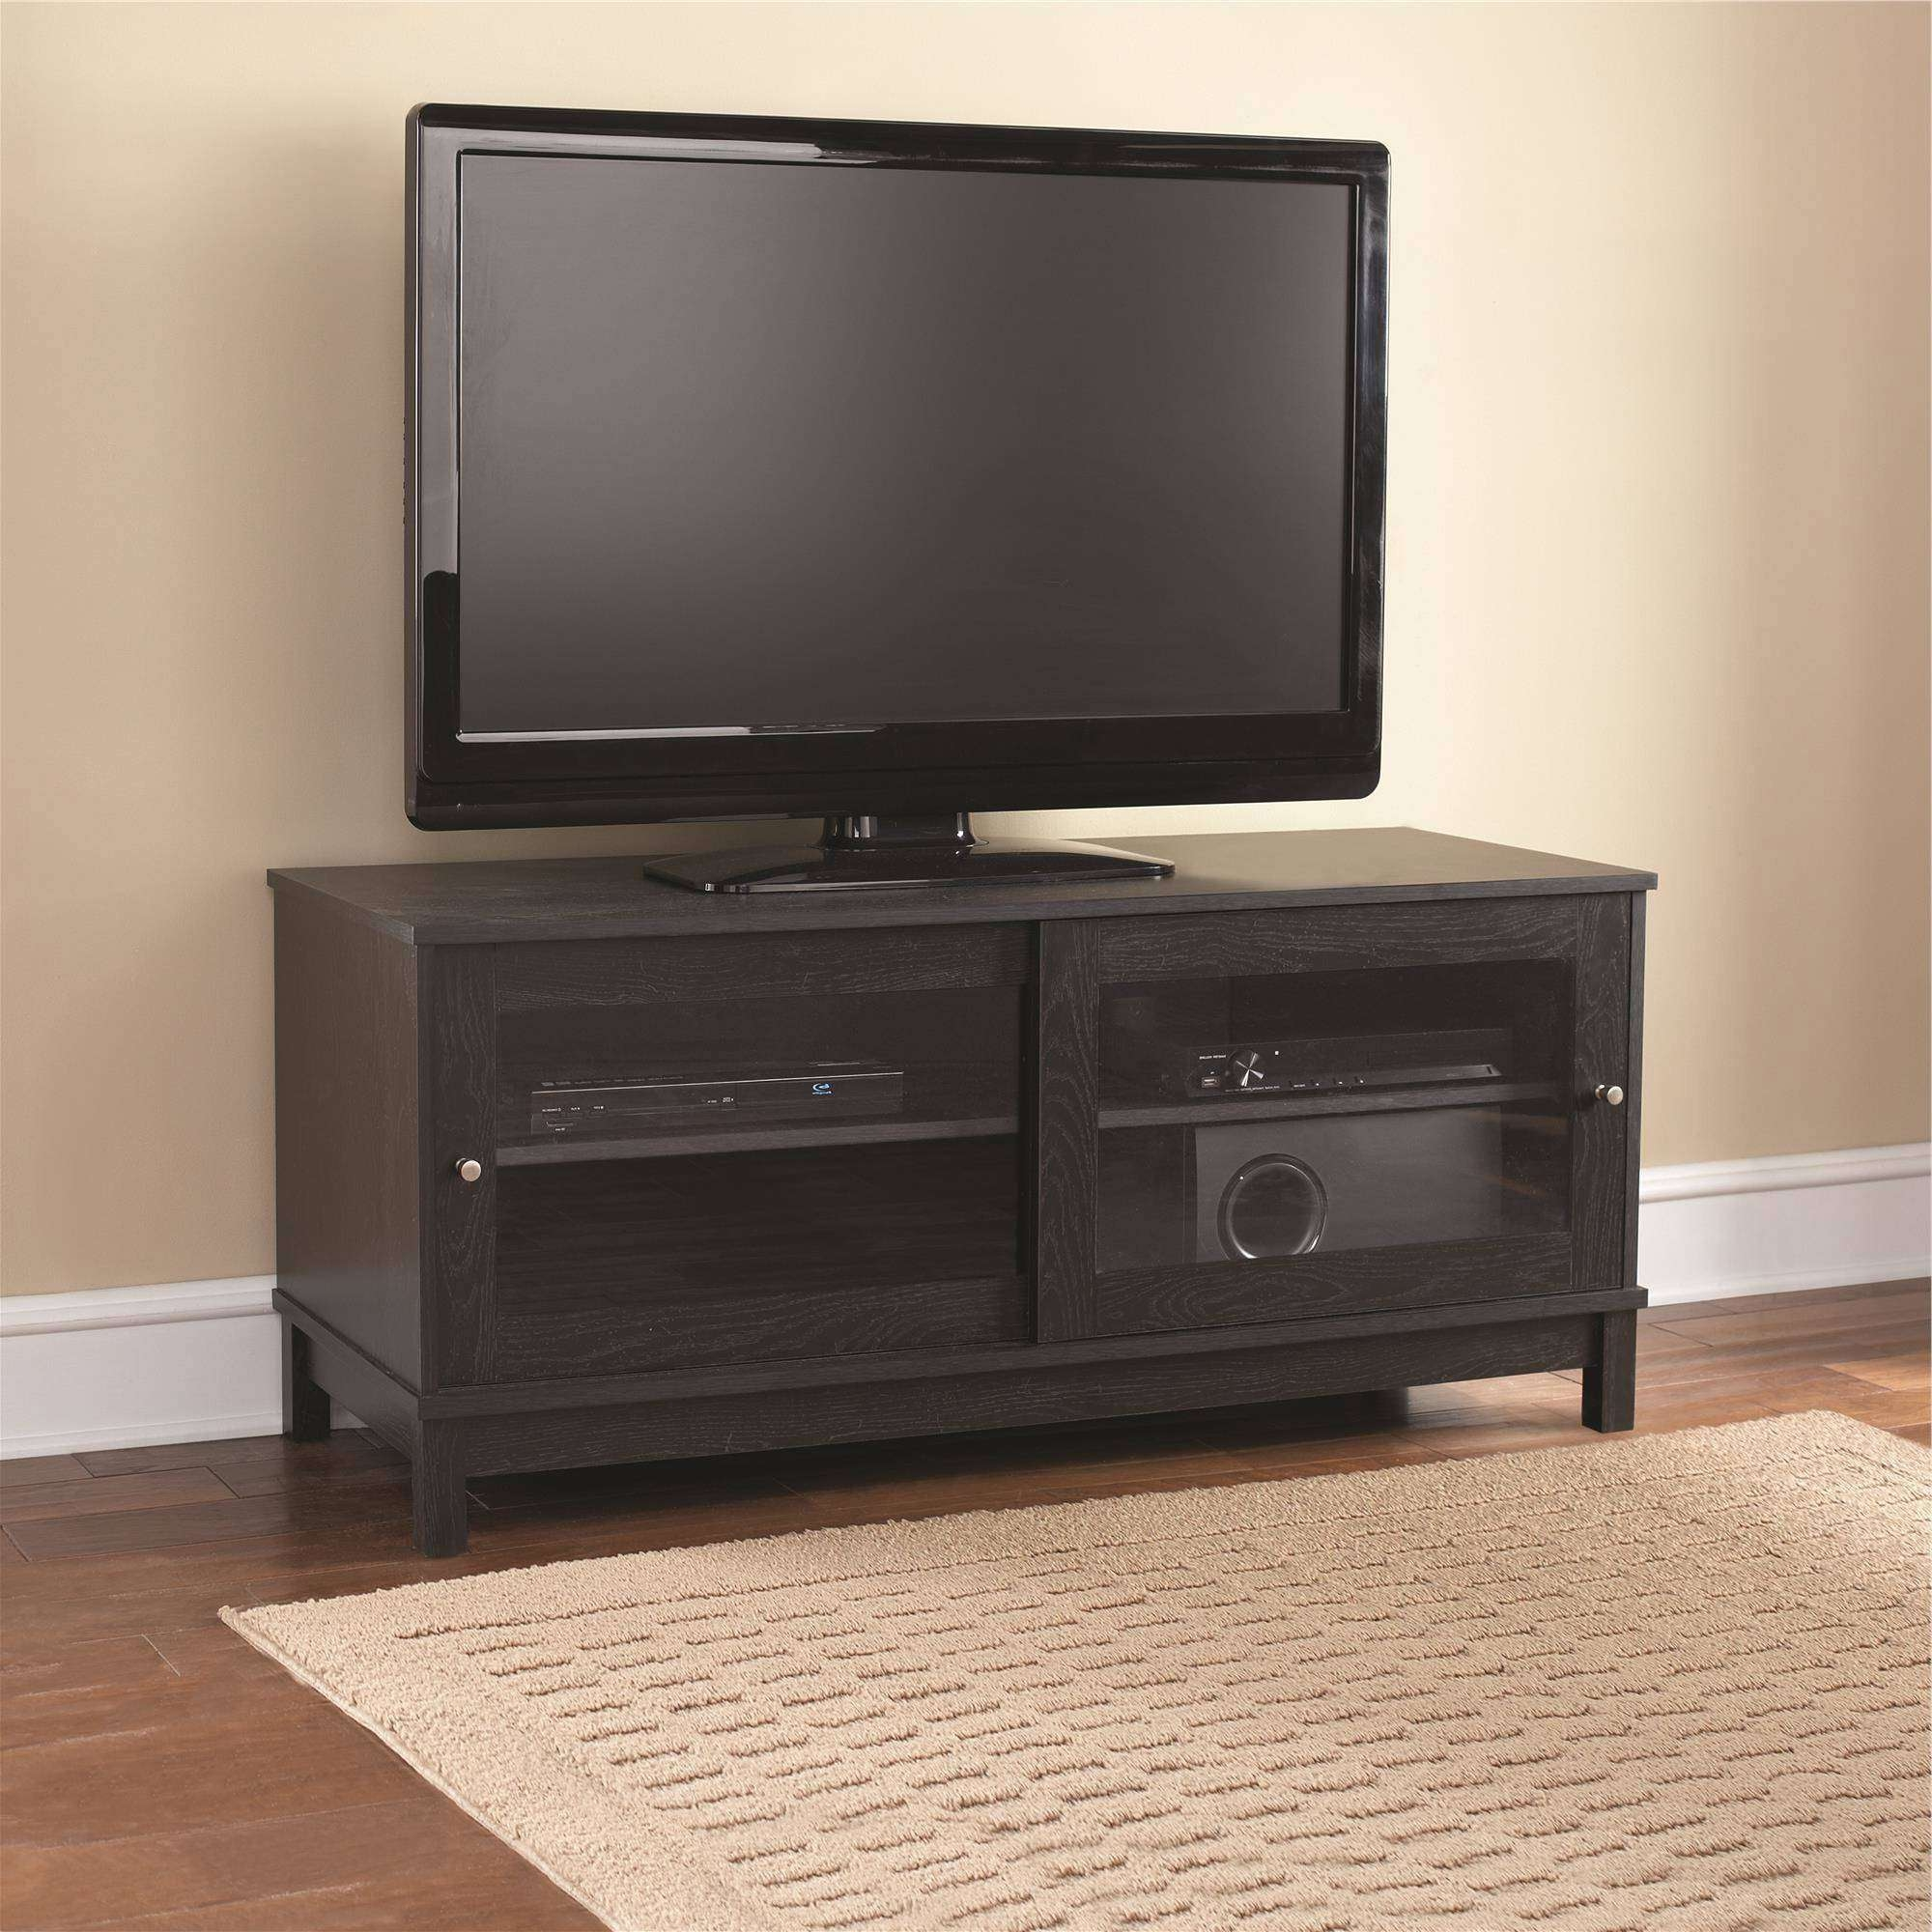 Calmly Tv Cabinet Ikea Ikea Hack Lack Tv Stand Similiar Lack Tv Throughout Wide Screen Tv Stands (View 13 of 15)